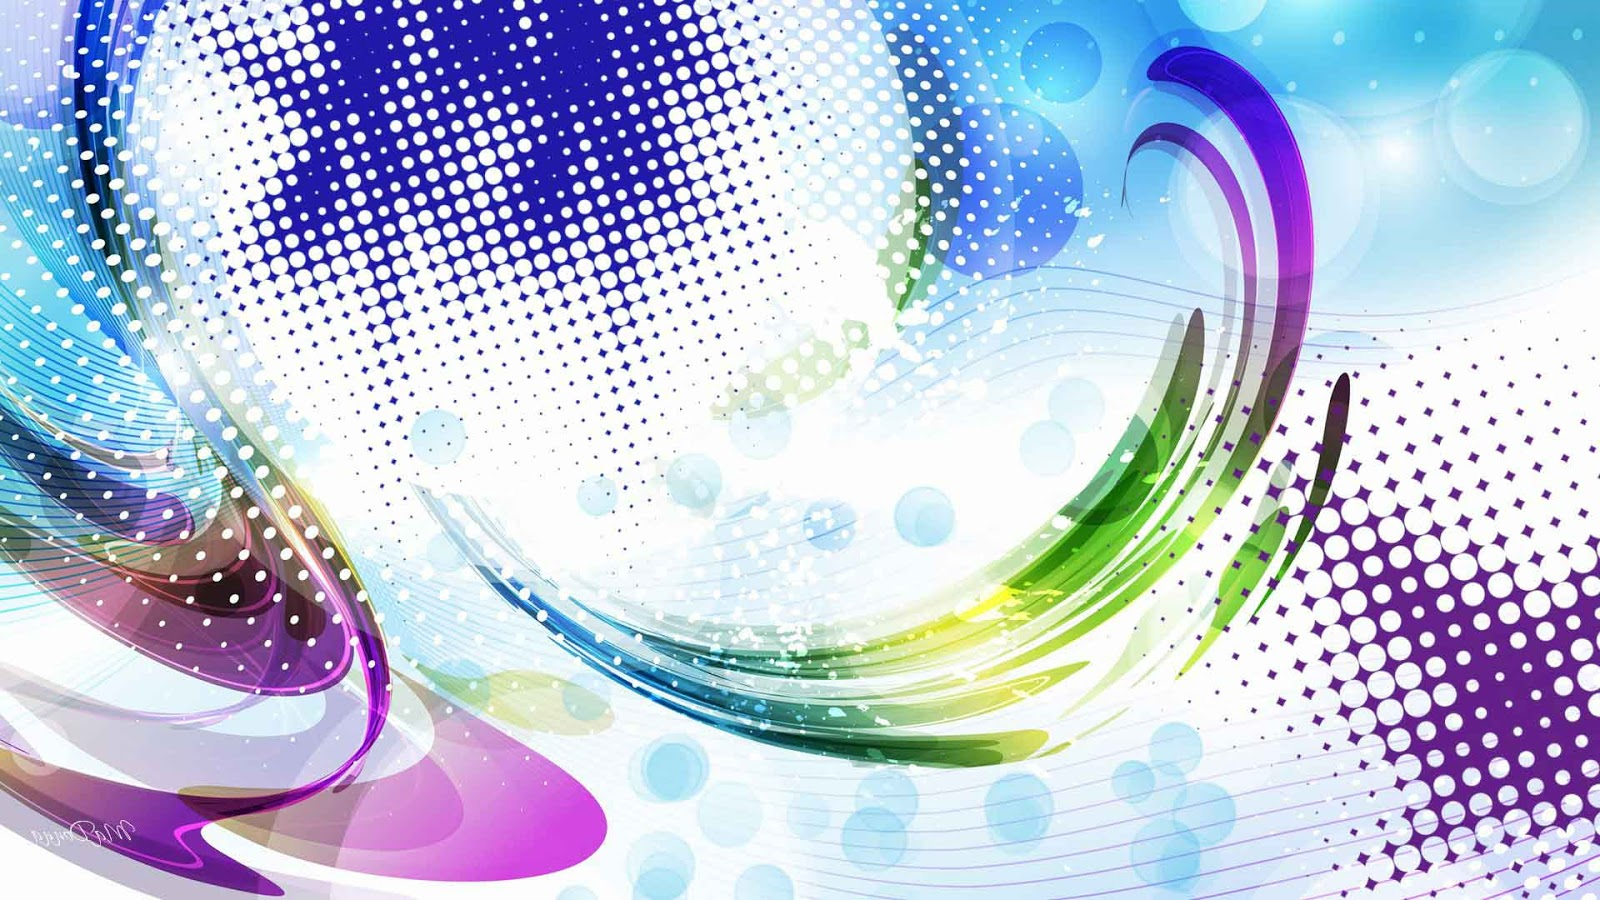 abstract latest background